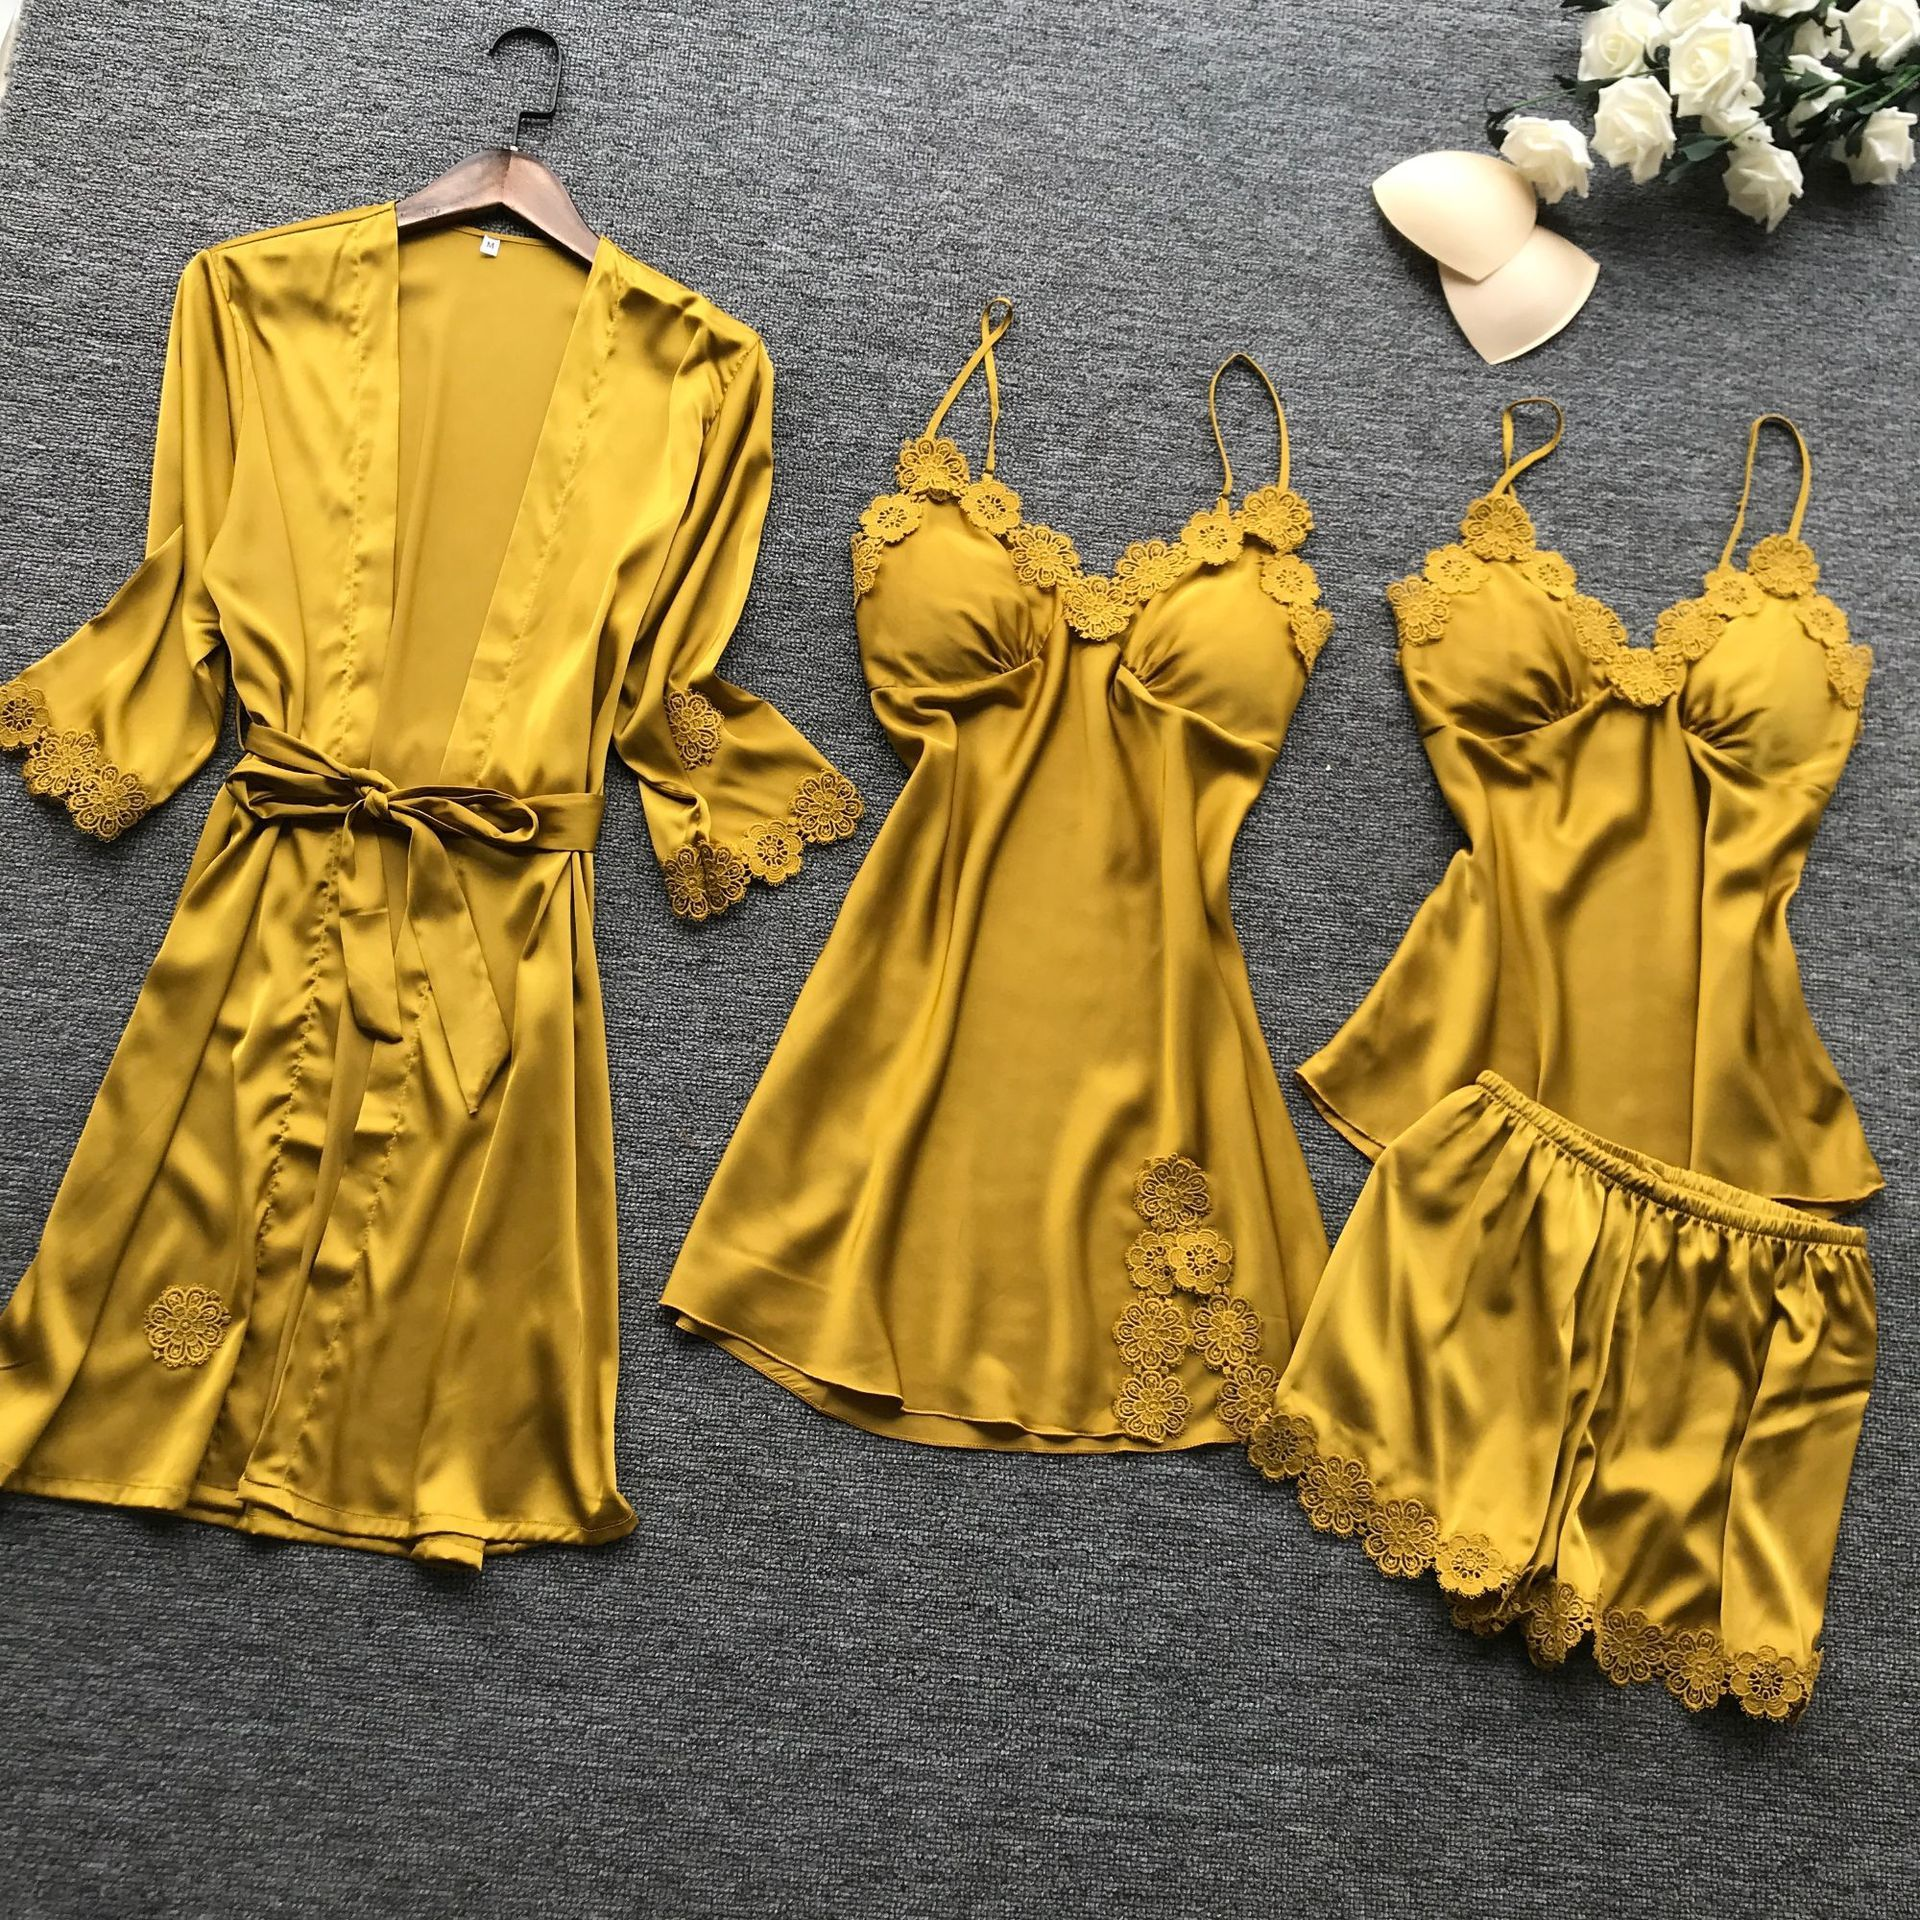 Lisacmvpnel 4 Pcs Women Satin Pajamas Embroidery With Chest Pad Sexy Sleepwear With Belt Cardigan Pyjama